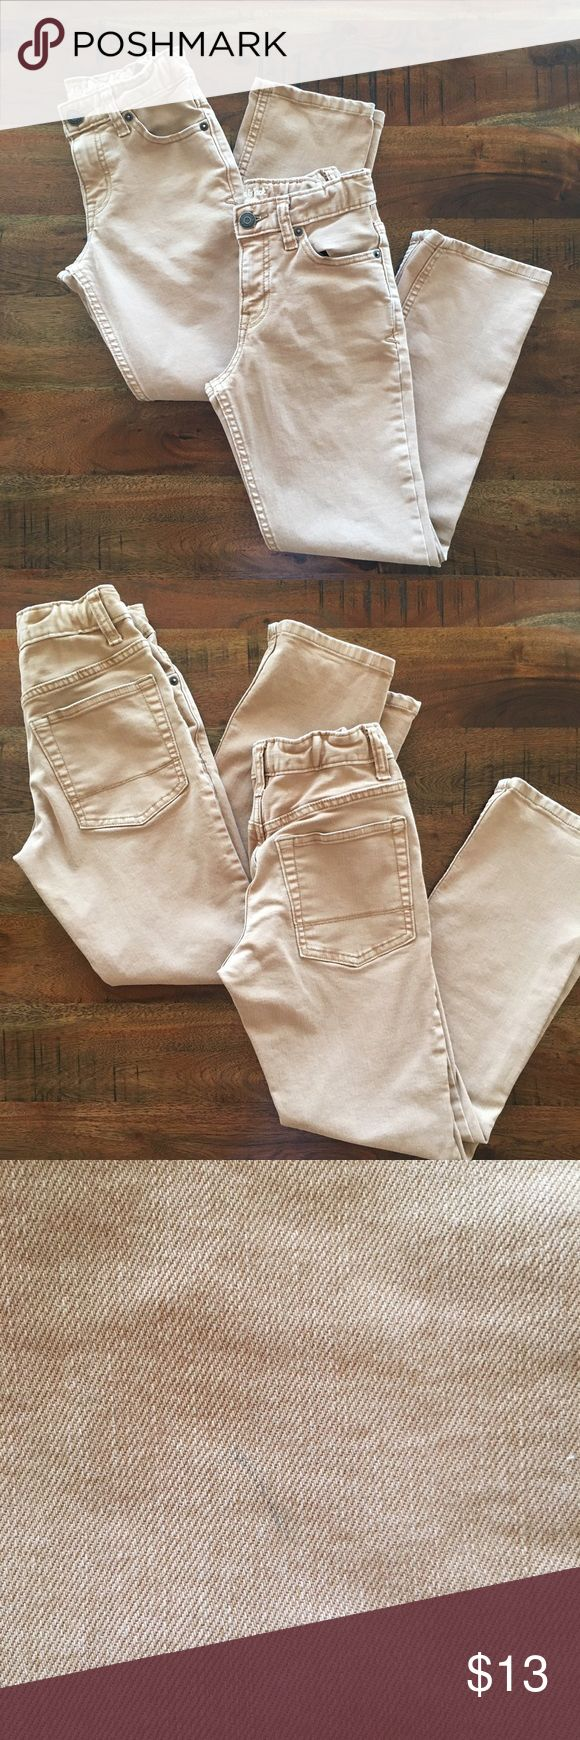 2️⃣ Bundle Boys Cat & Jack Tan Jeans Buy 2 Bundle adjustable waist boys Cat & Jack Regular/Straight tan color jeans in size 8. Best fit for a regular/husky boy. Good condition with two minor flaws (see pics). The pics do not reflect the correct color. It's more like a camel color. Great buy! Cat & Jack Bottoms Jeans